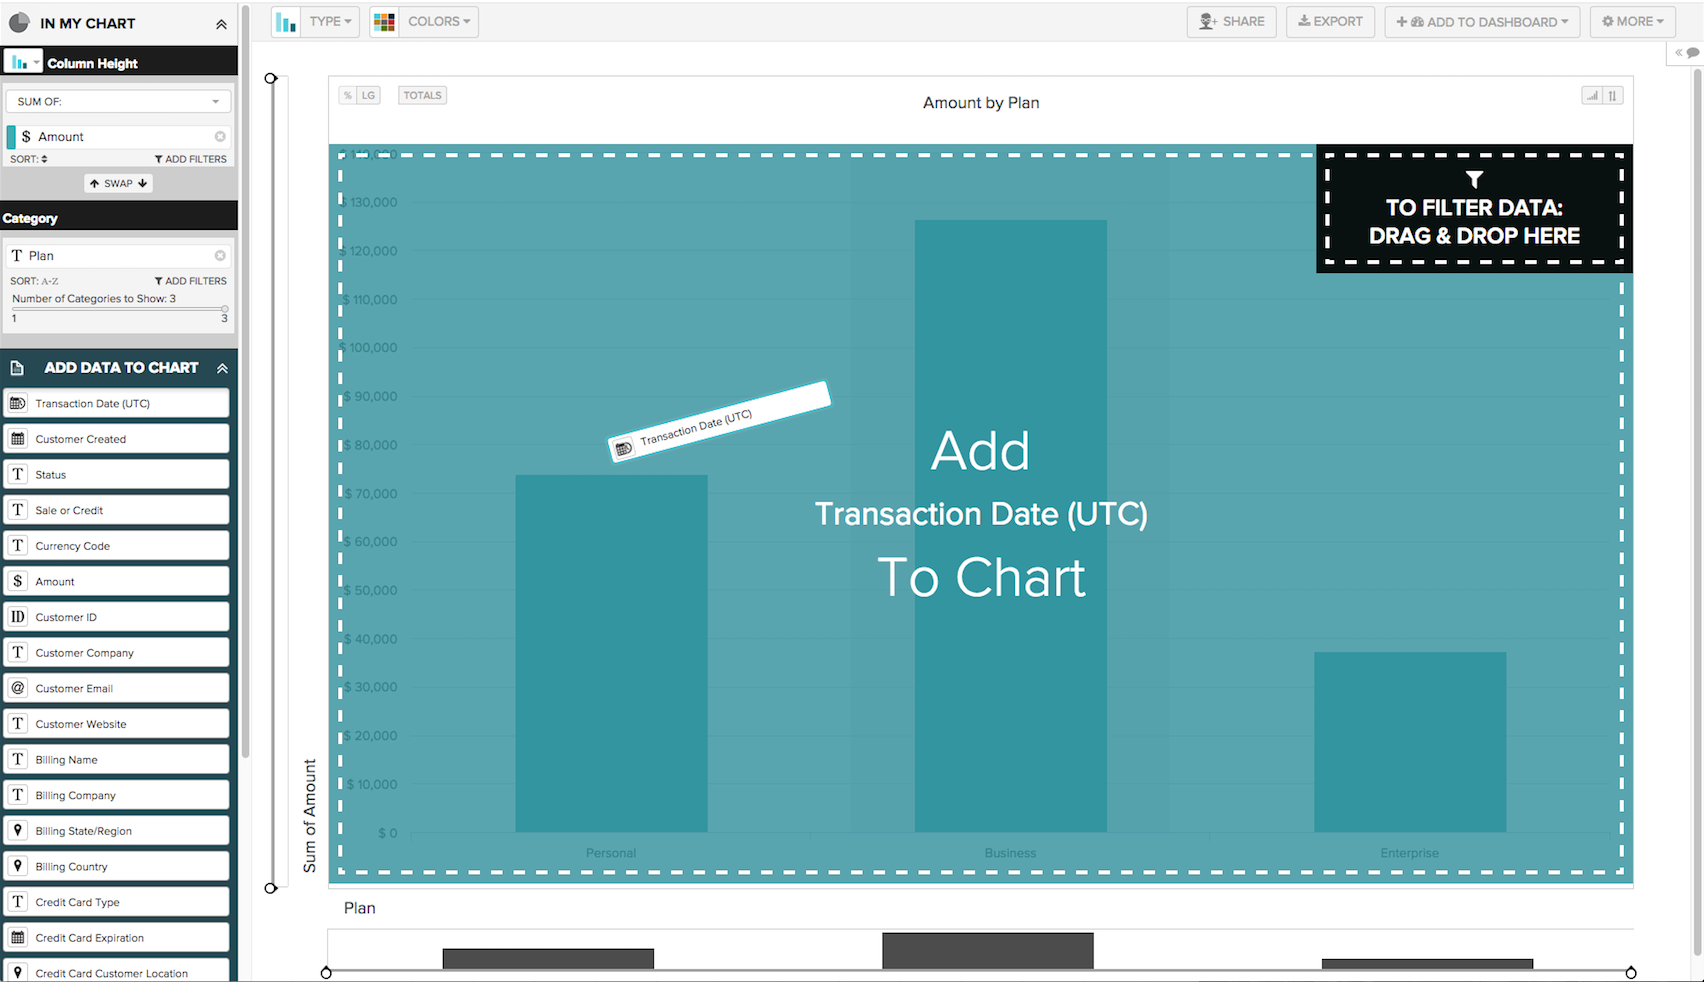 Users can create charts using the drag-and-drop interface in DataHero